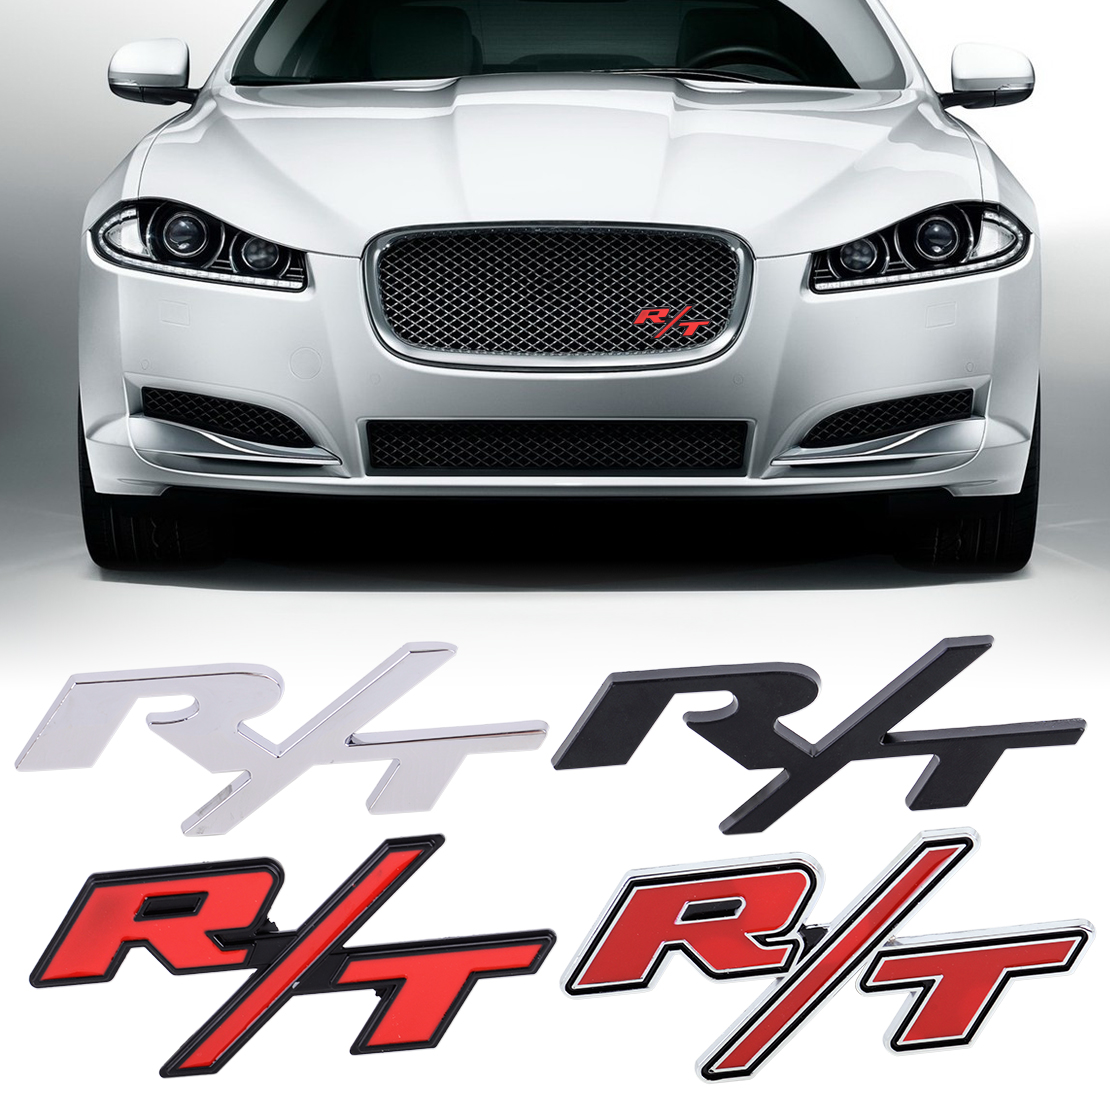 CITALL Front Grille Metal Car 3D R/T RT Logo Styling Emblem Badge Sticker with Screw Gasket Kit Fit for Chrysler Dodge Charger auto chrome camaro letters for 1968 1969 camaro emblem badge sticker